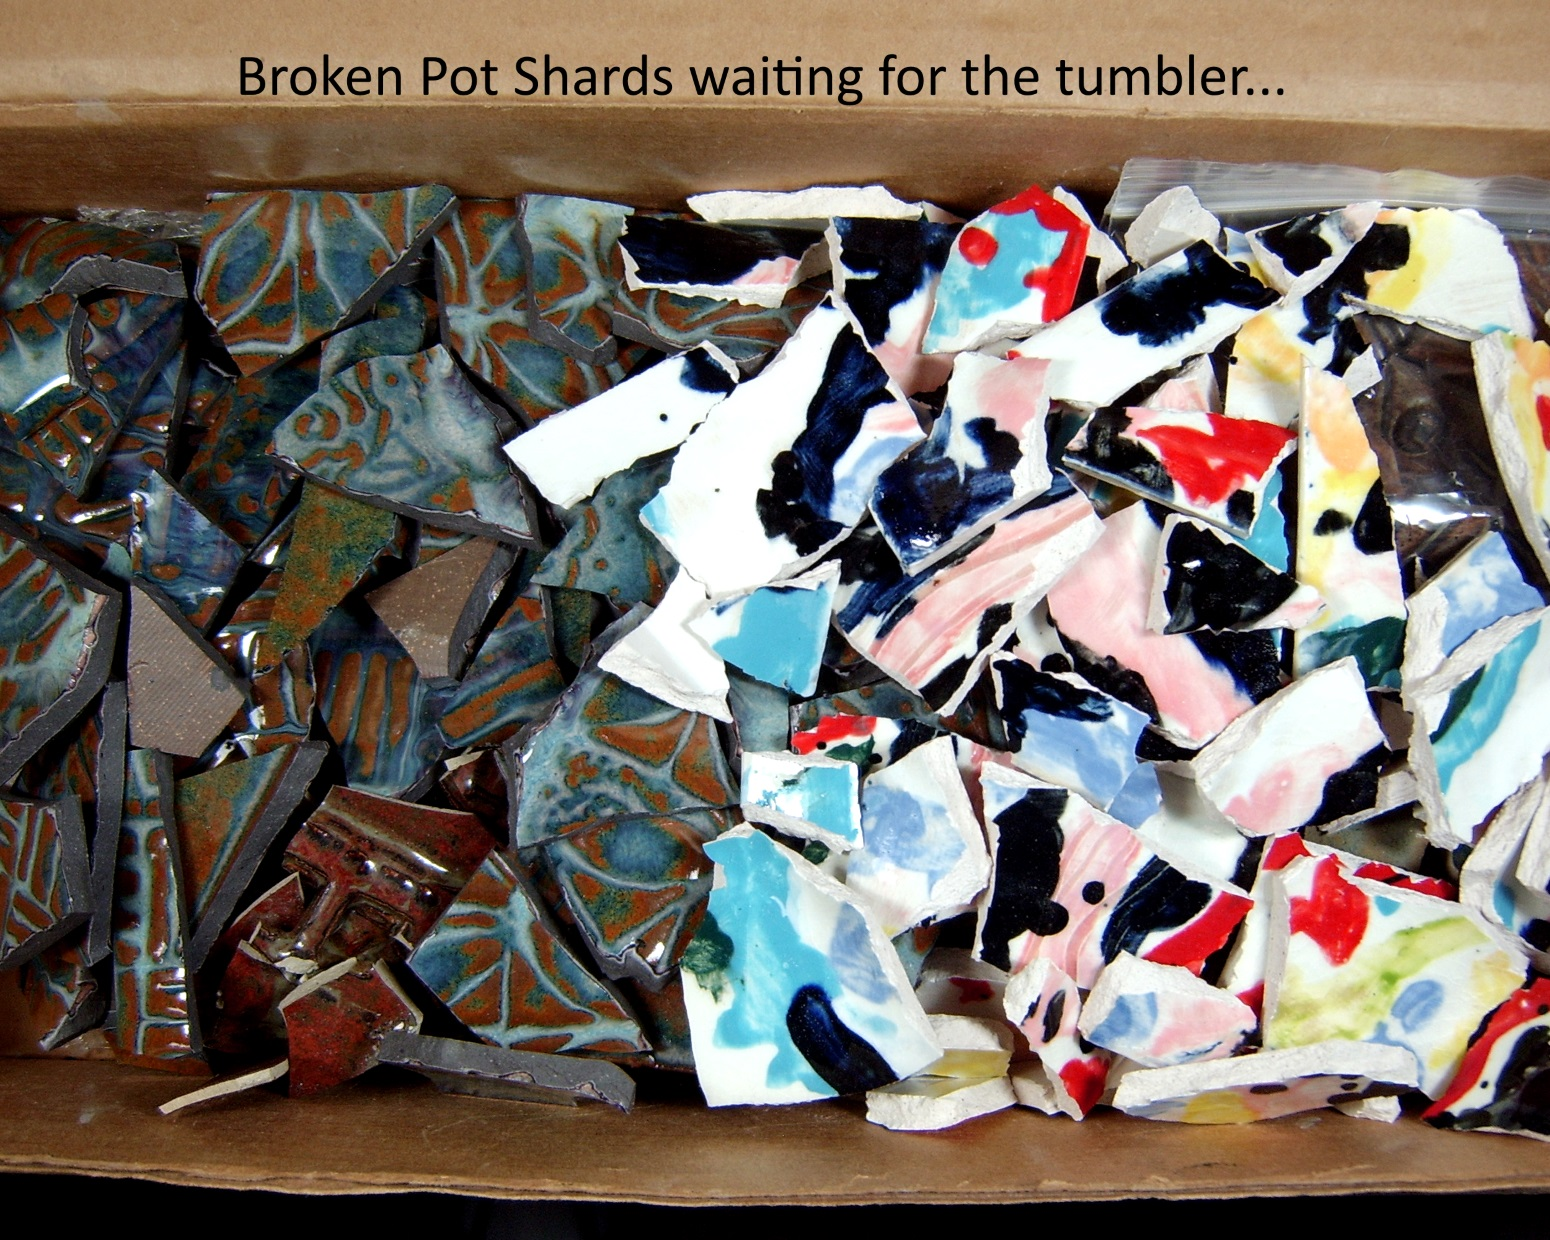 More Pottery Shards...